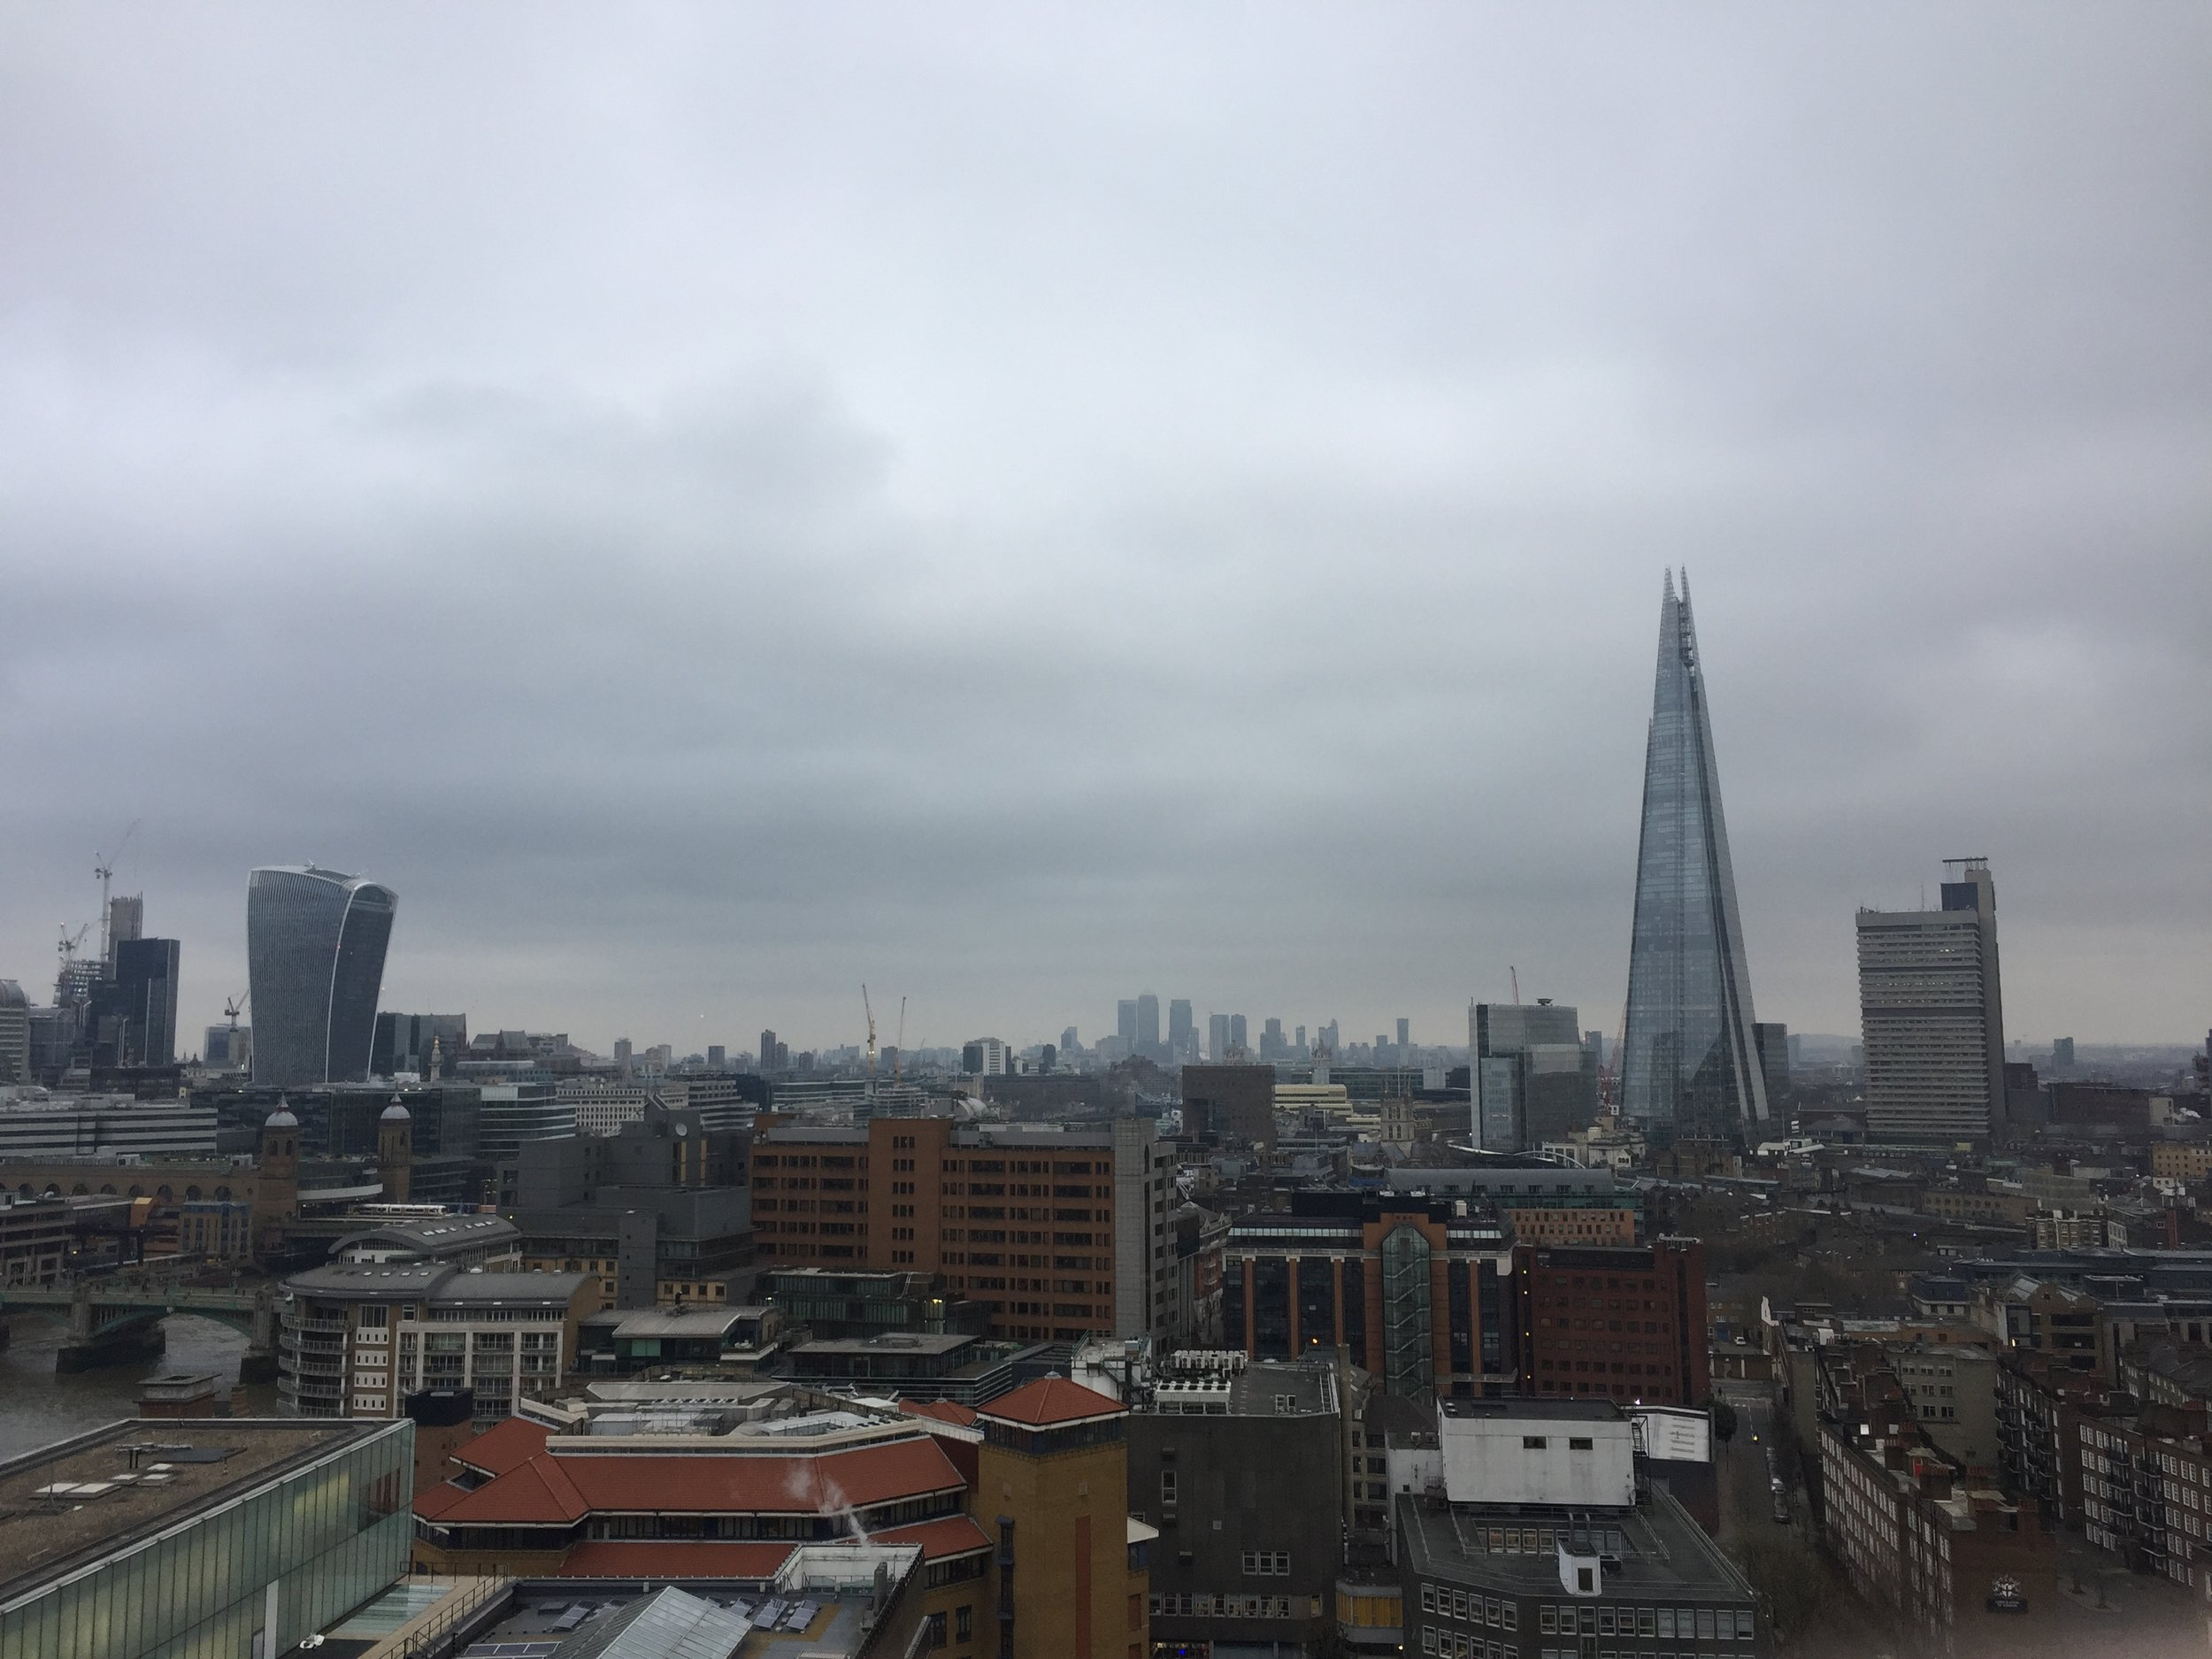 View from the 10th floor of the Tate Modern